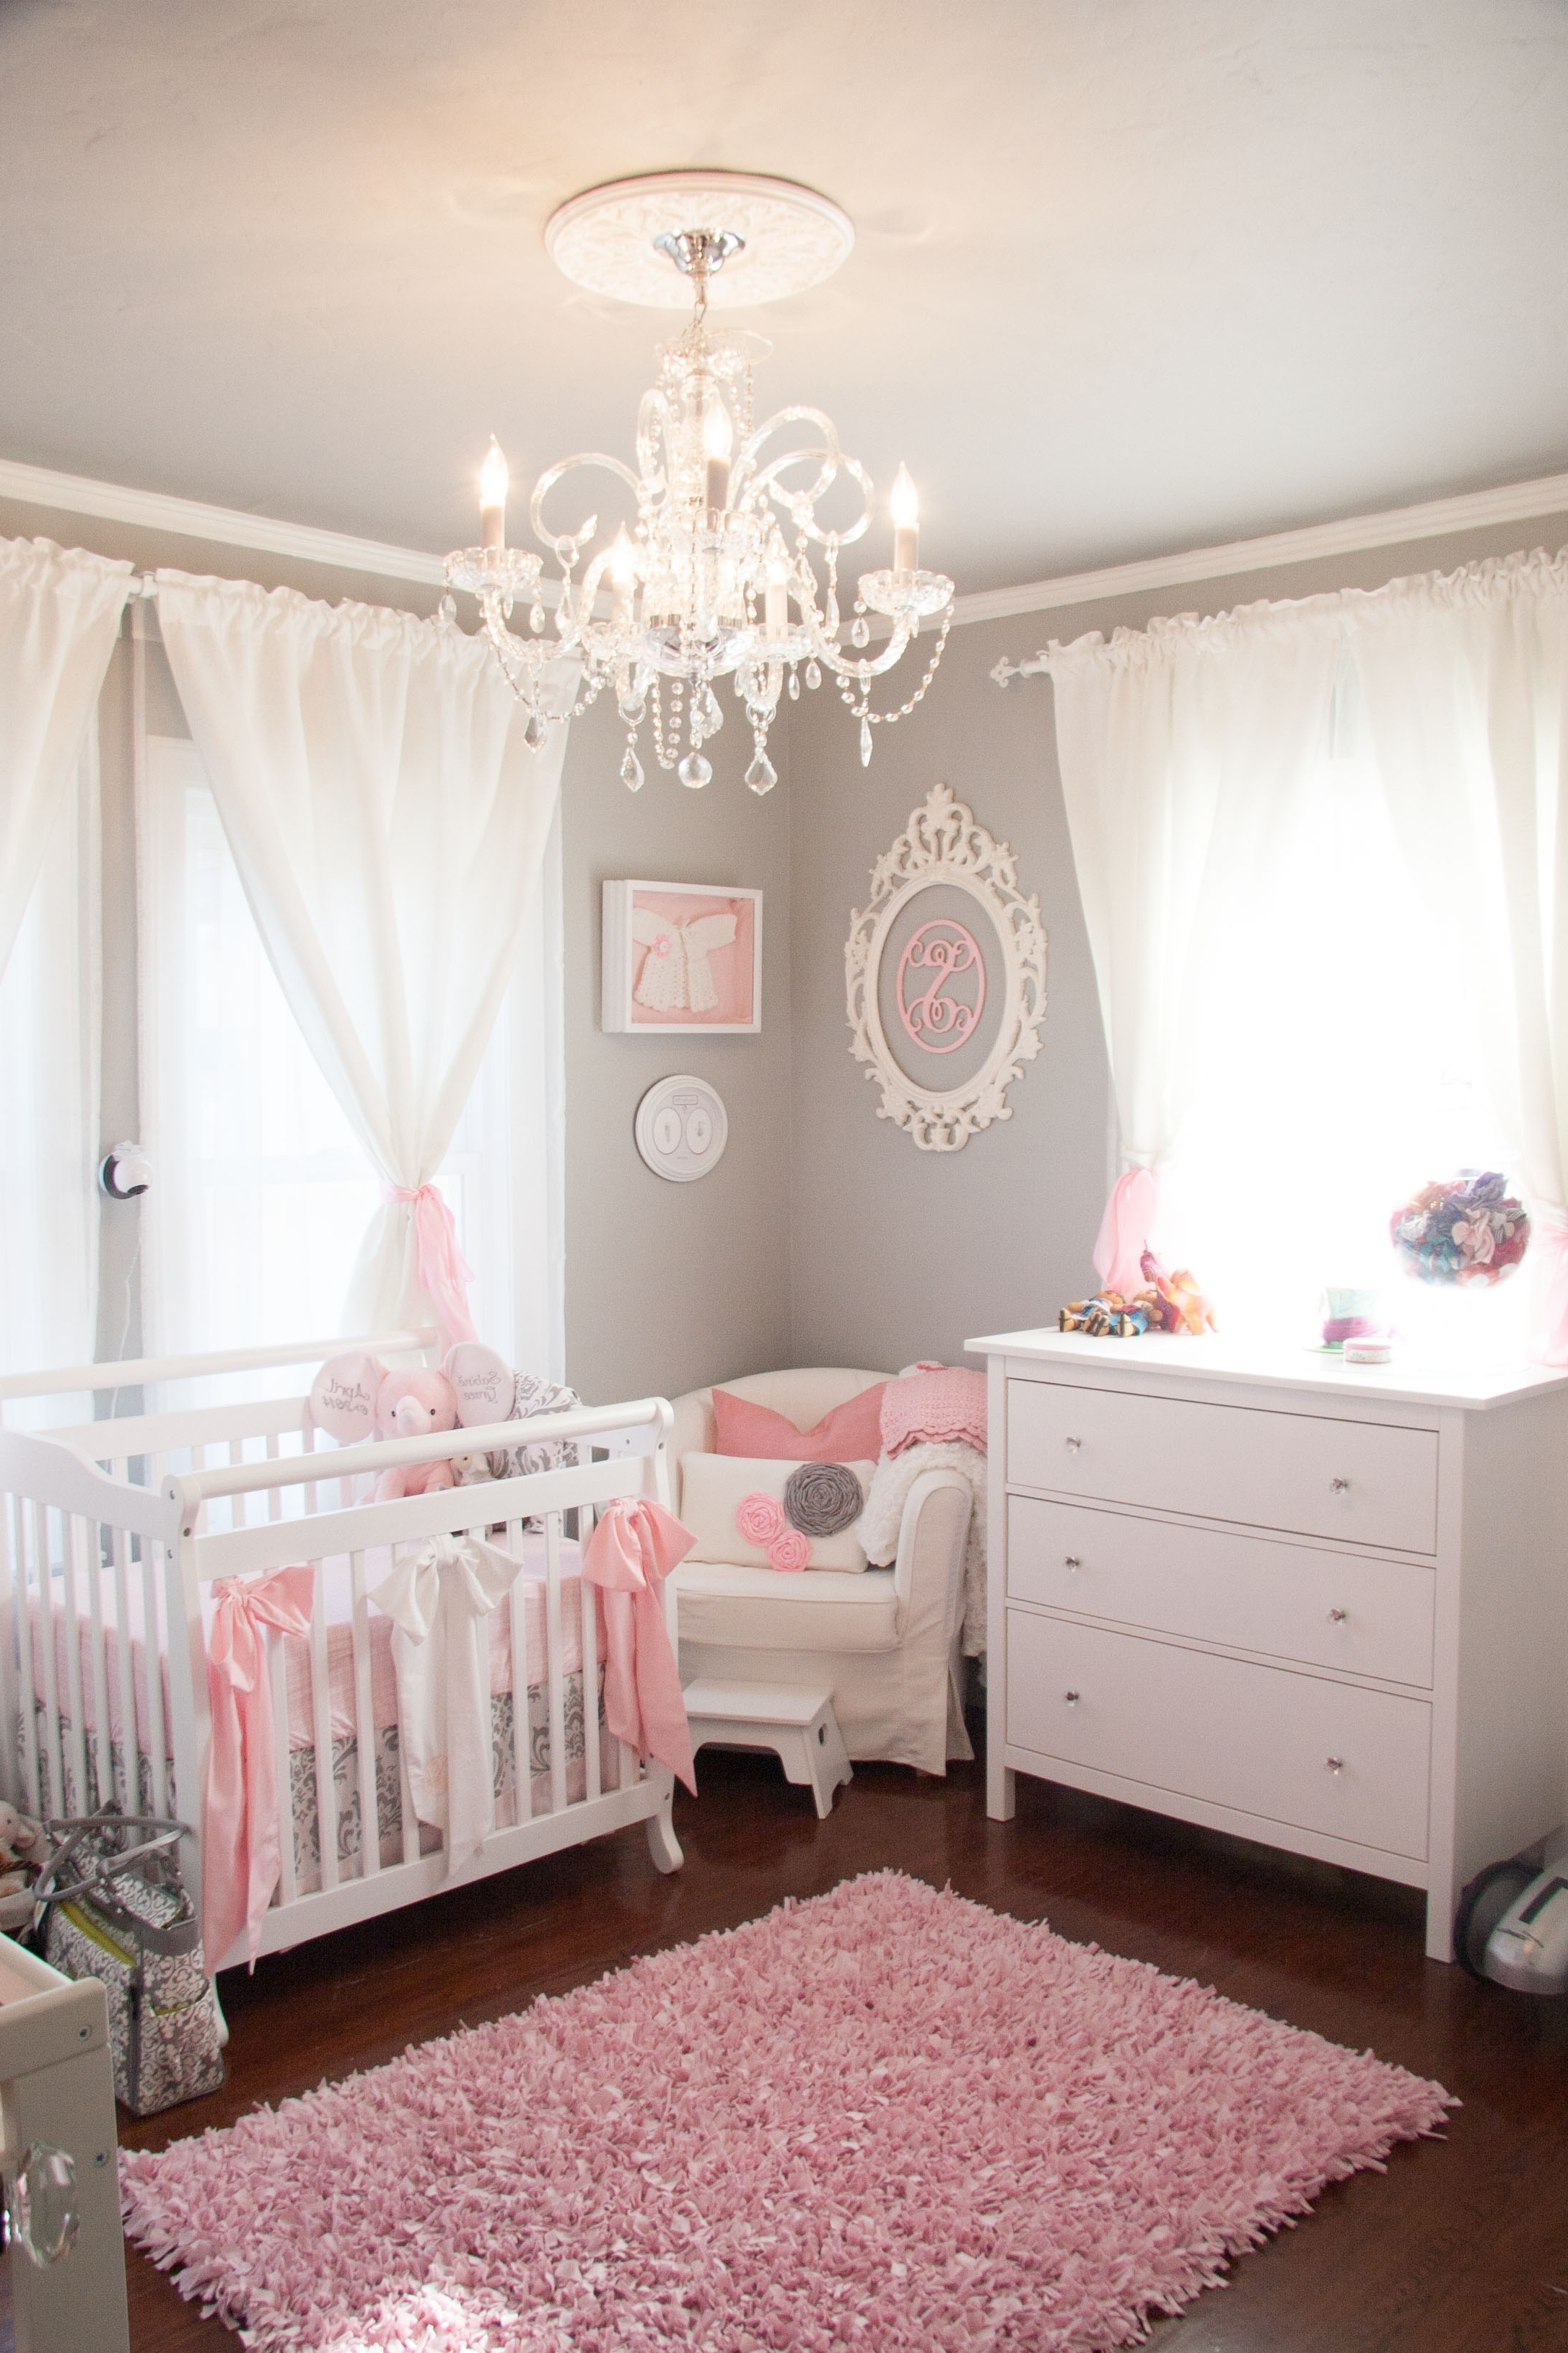 Chandeliers For Girl Nursery In 2018 Tiny Budget In A Tiny Room For A Tiny Princess – Project Nursery (View 5 of 20)